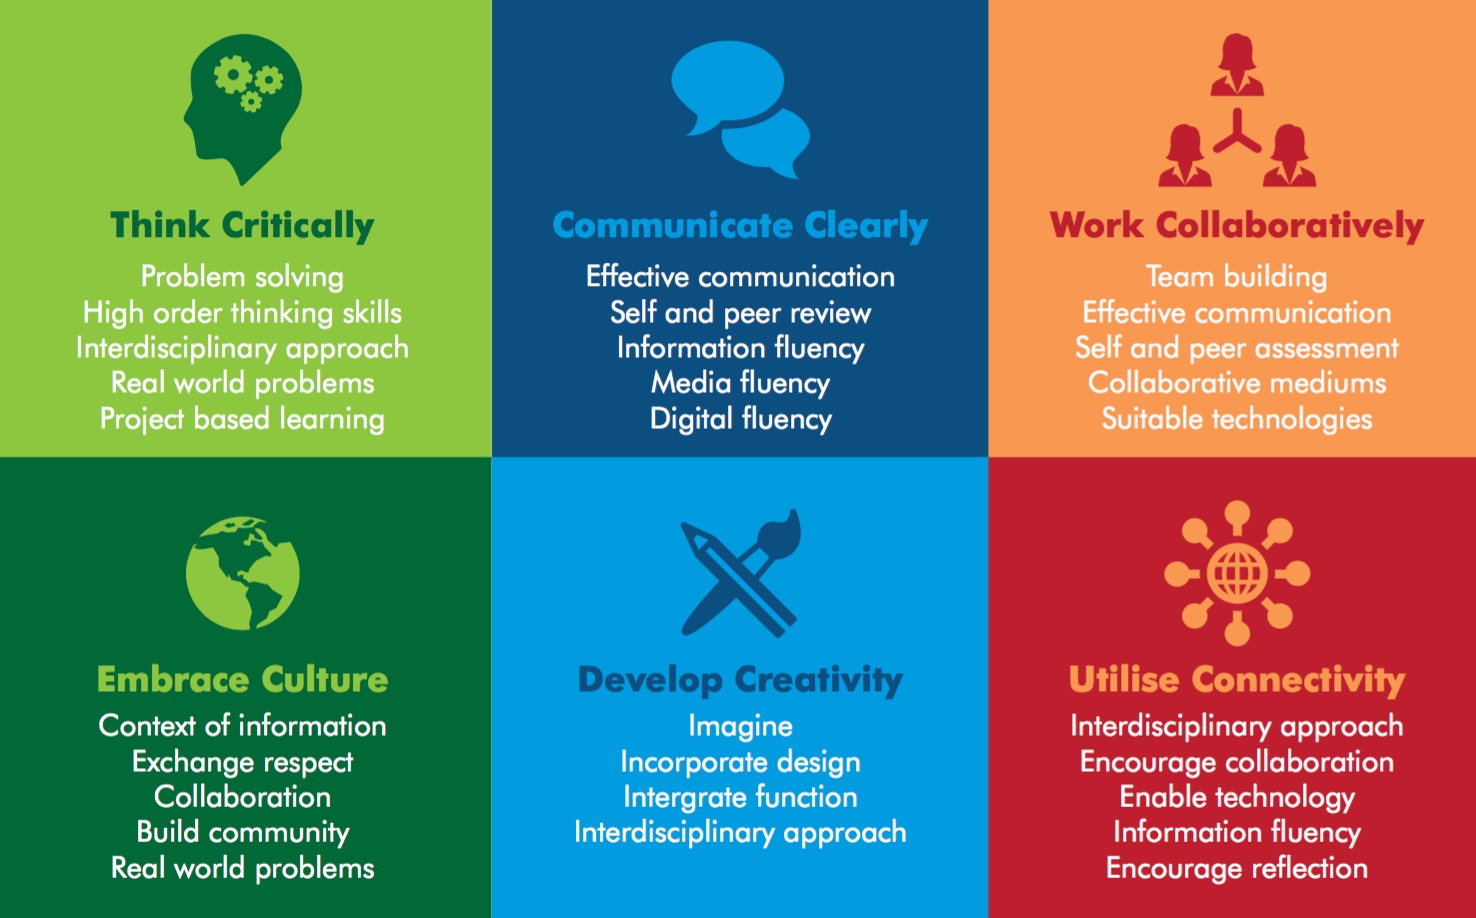 Soft Skills needed for the 12st century workforce - the six C's Source:https://infogr.am/the-6-cs-of-education-for-the-21st-century